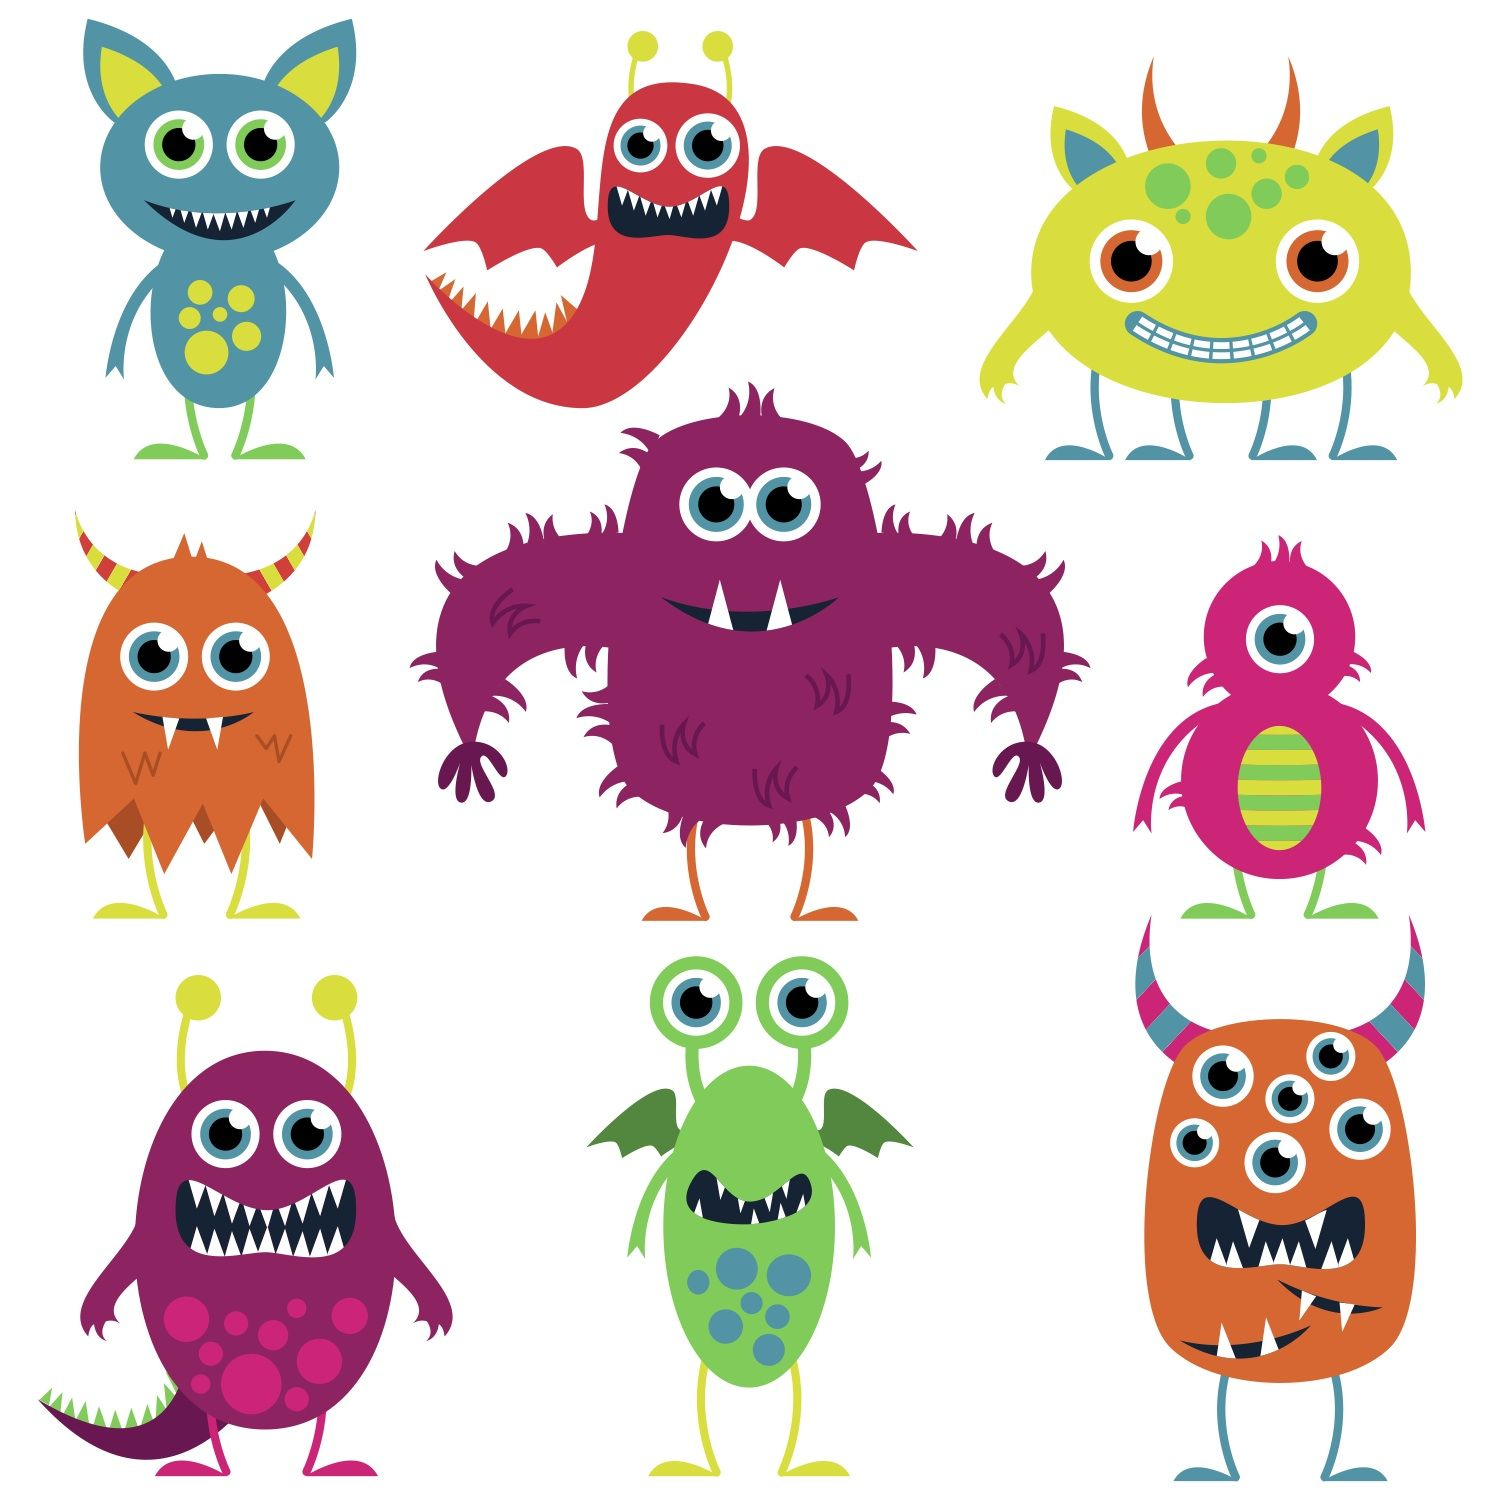 friendly monsters illustrations - Google Search ...